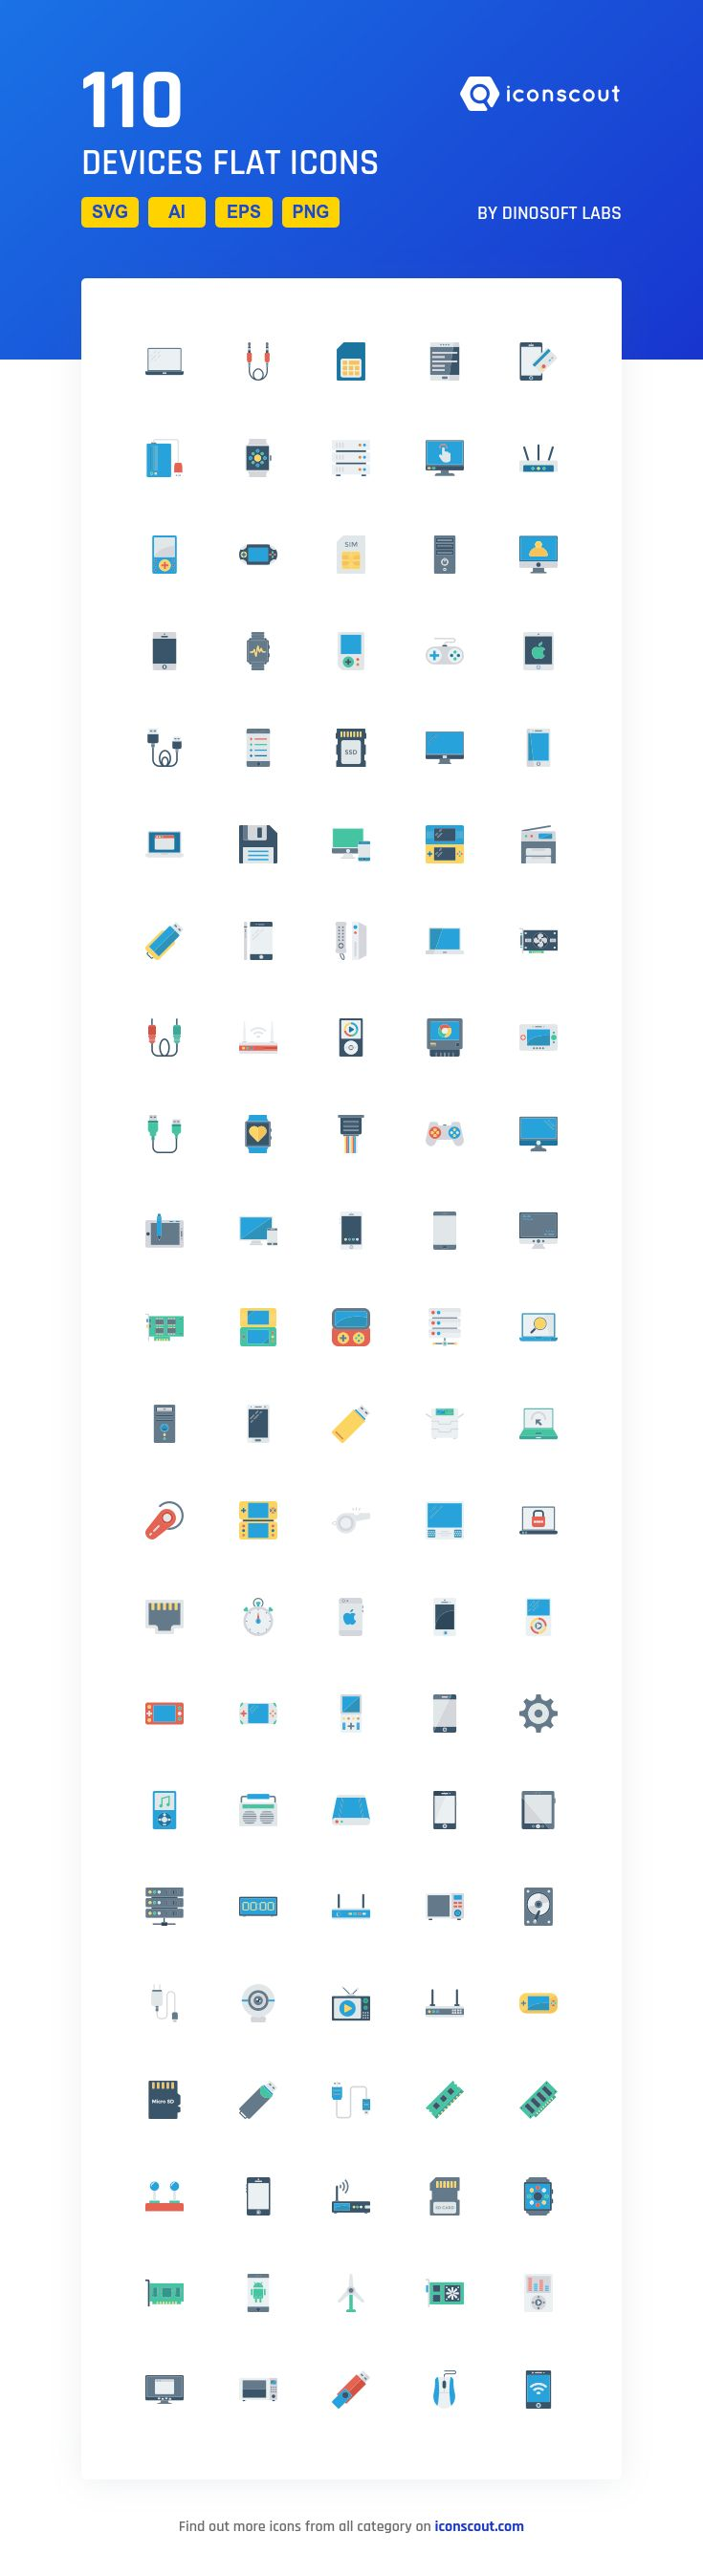 Devices Flat   Icon Pack - 110 Flat Icons